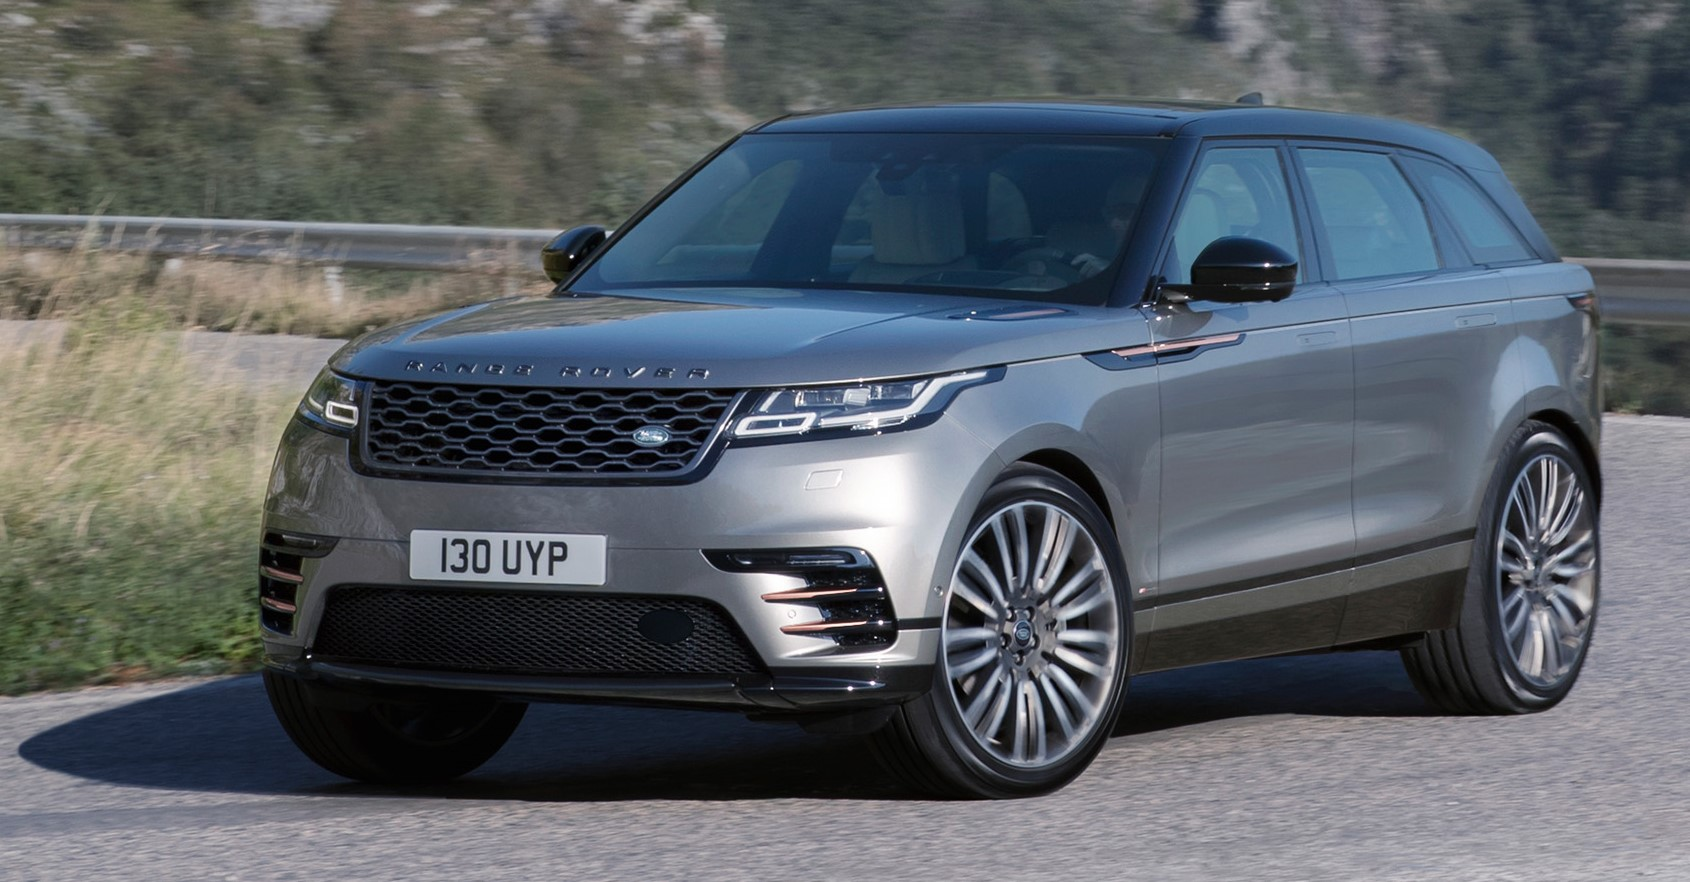 Introducing Range Rover Velar Myautoworld Com